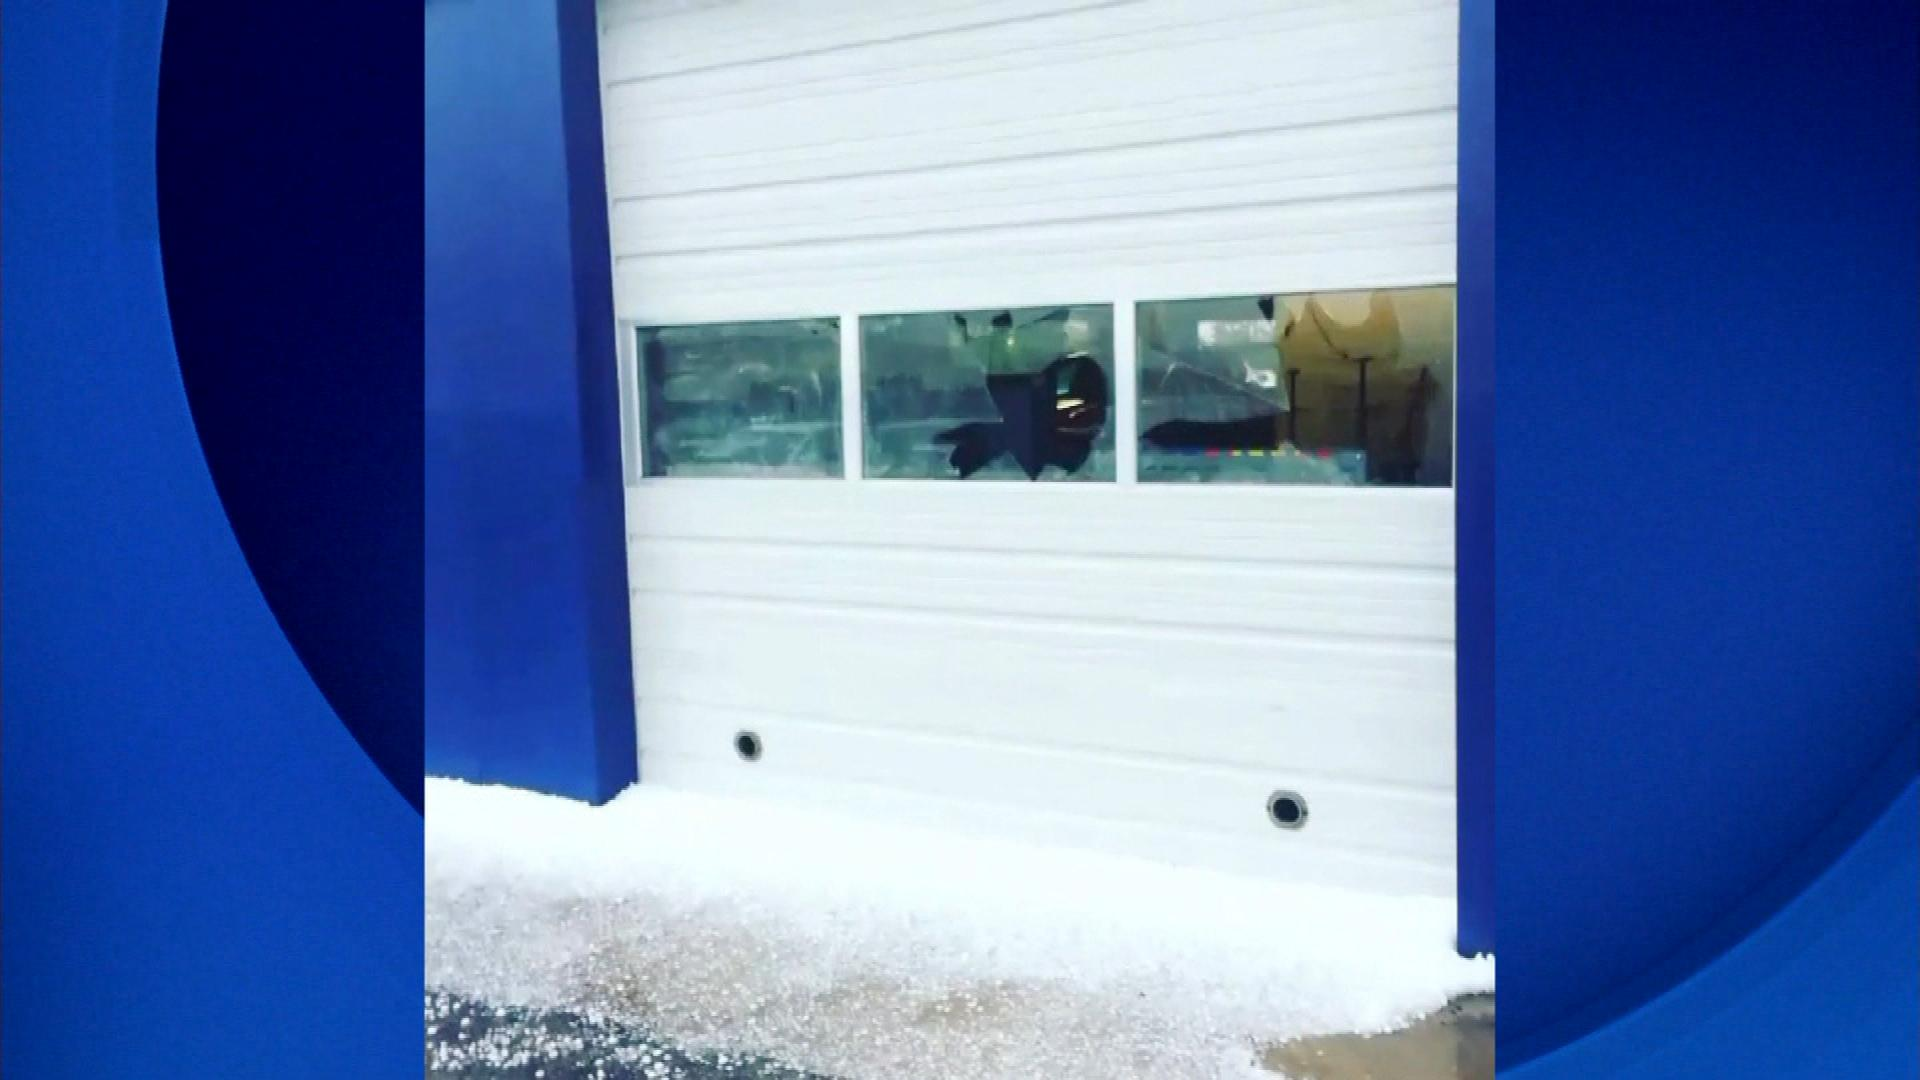 Hail damage at the Arapahoe Hyundai dealership (credit: Arapahoe Hyundai)